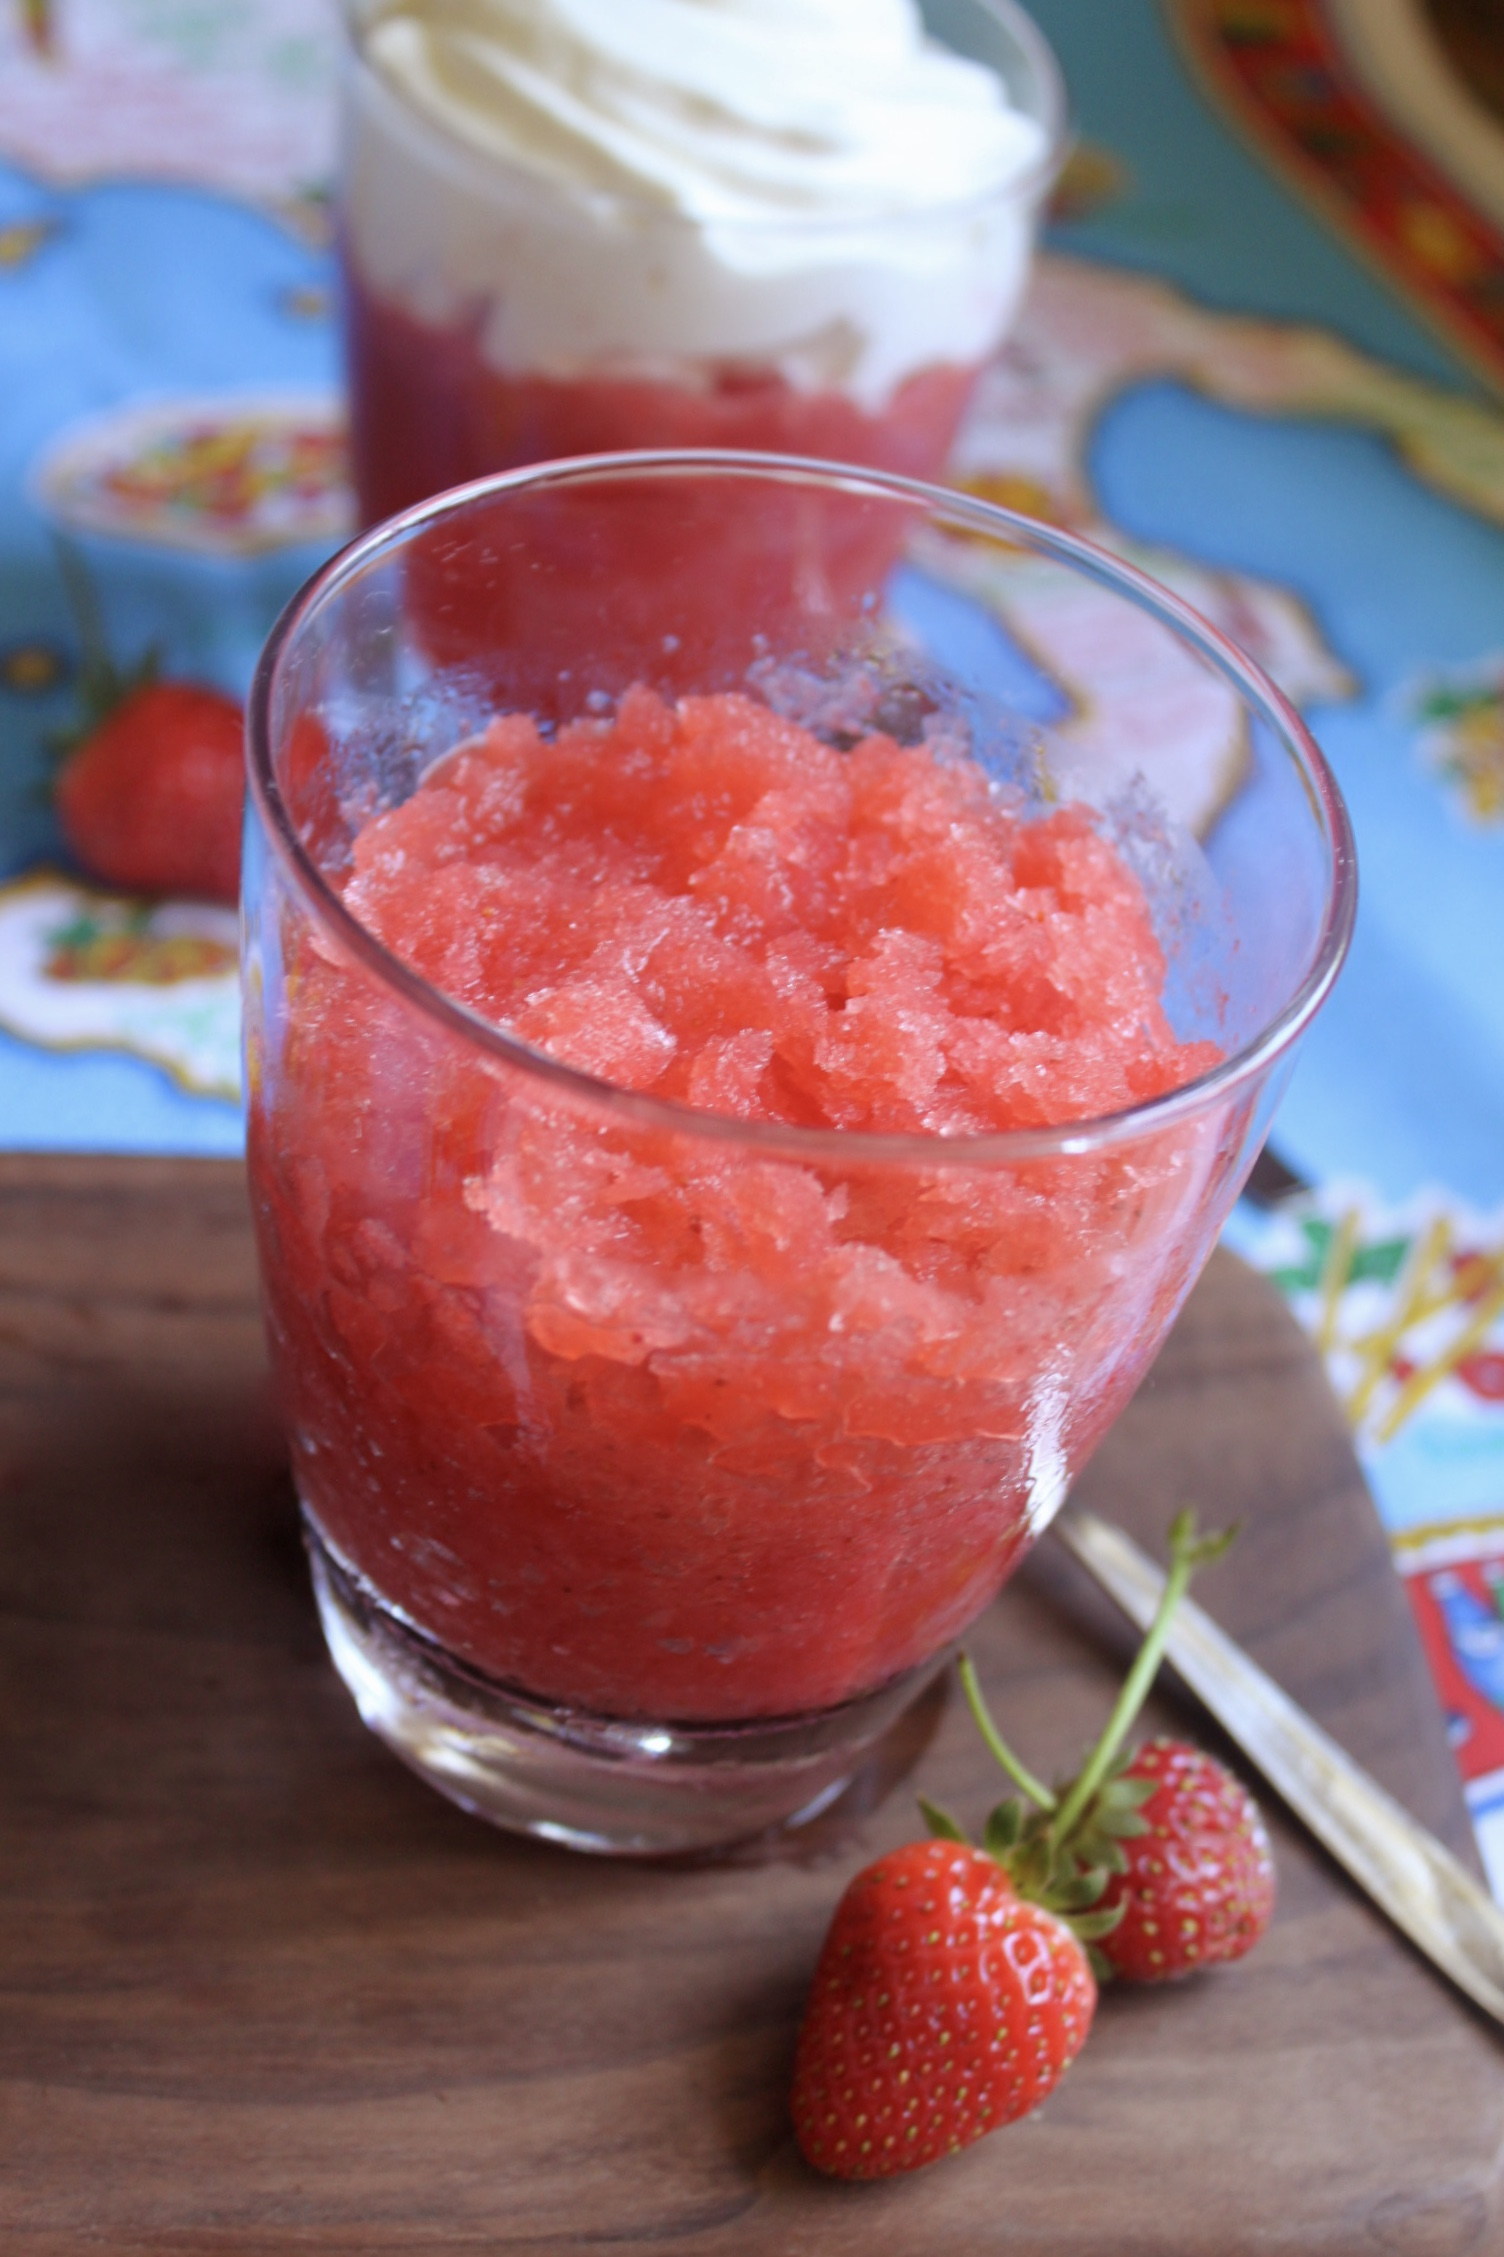 serving strawberry ice in a glass